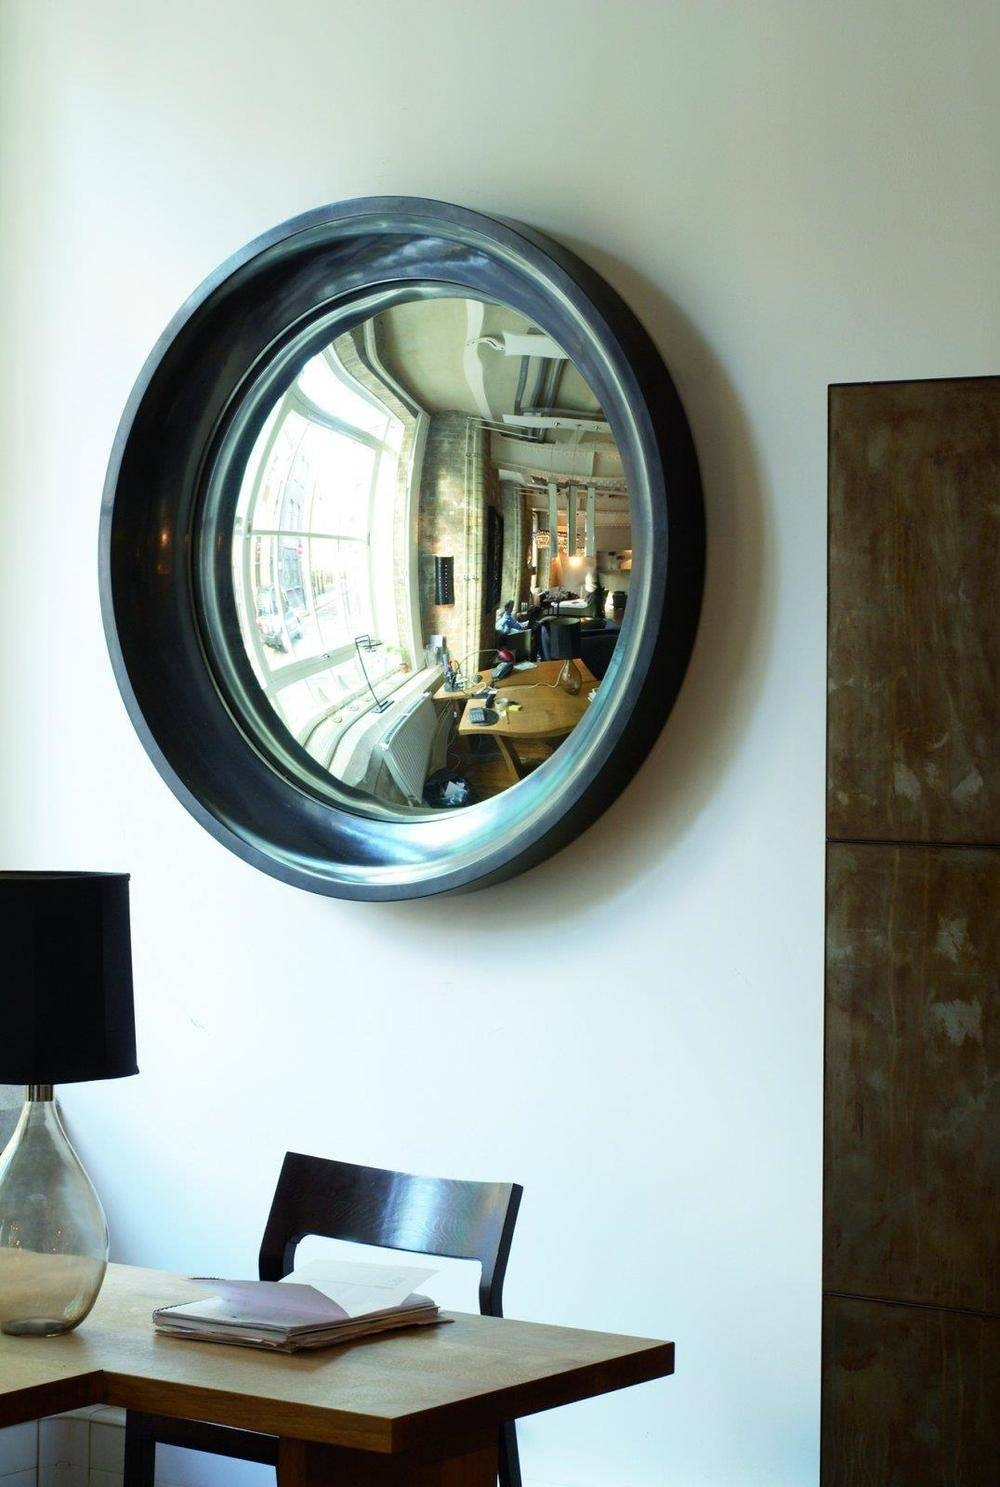 15 Interiors Turned Abstract Wall Arta Convex Mirror — Designed Within Concave Wall Mirrors (View 3 of 15)